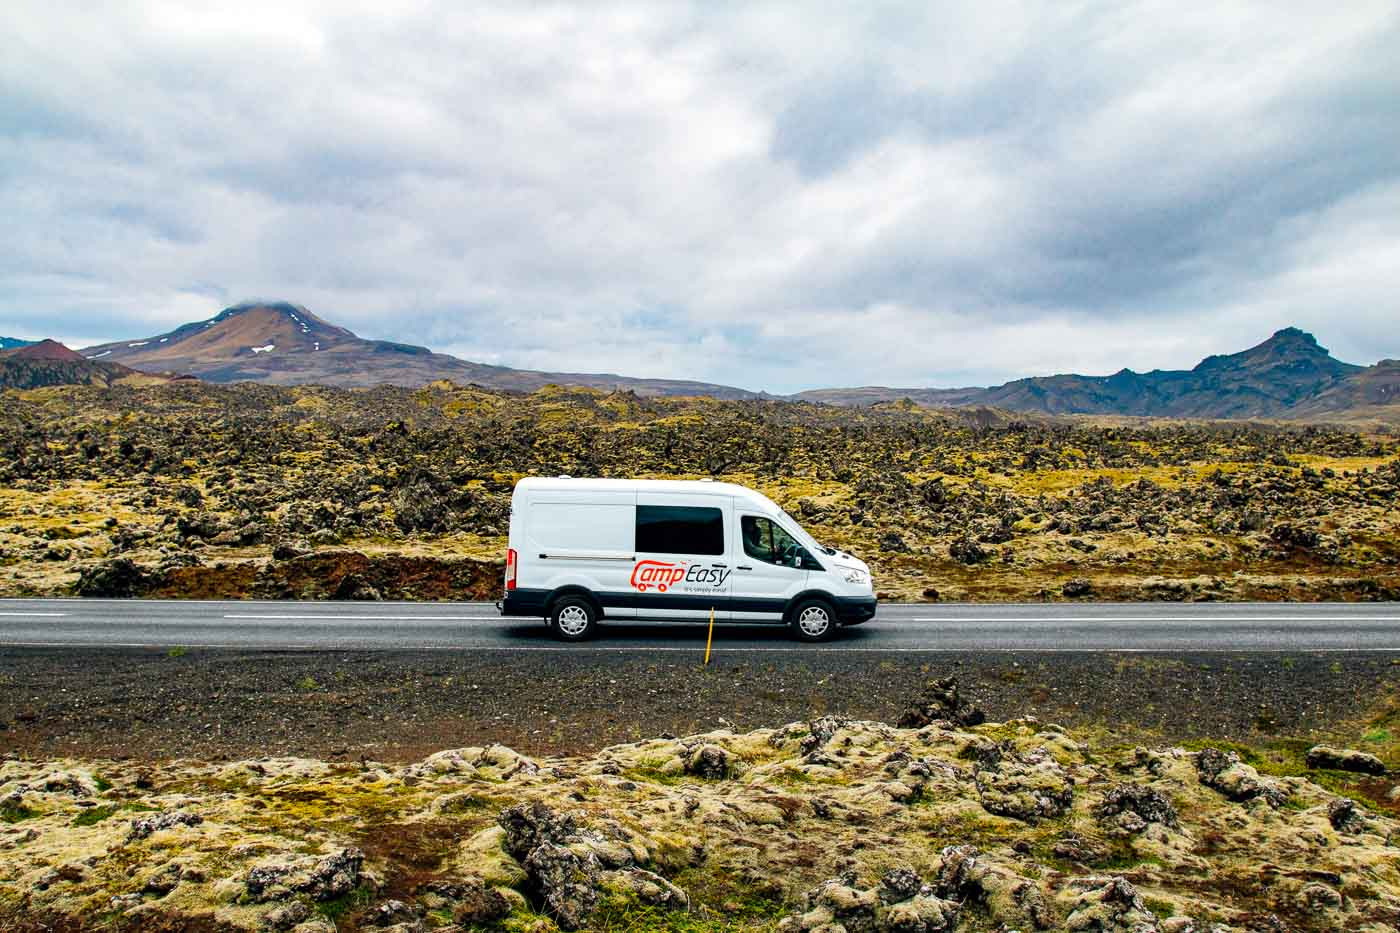 A campervan on a road in front of a lava field covered in moss on Iceland's Snaefellsnes Peninsula.